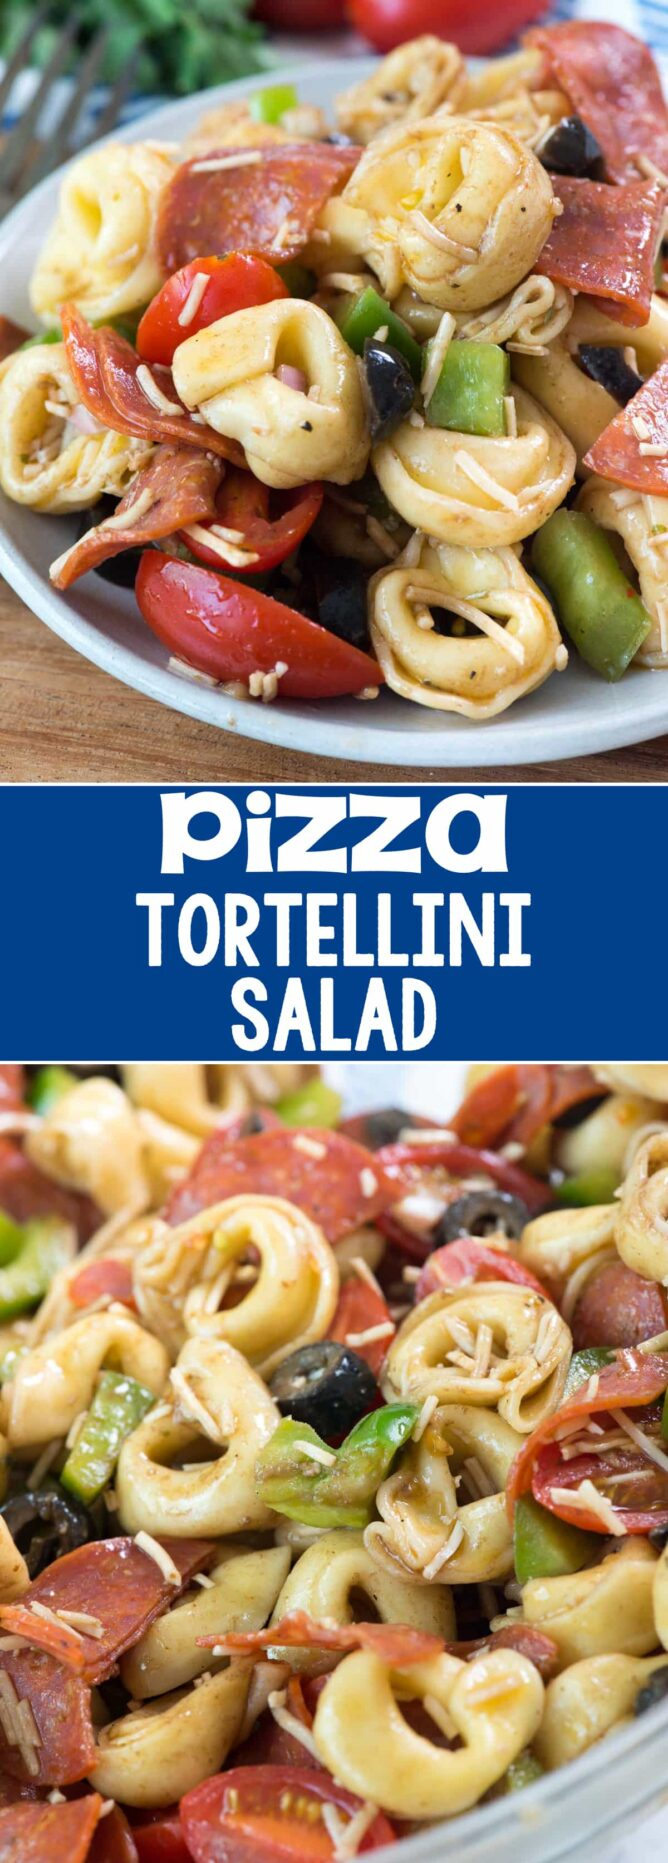 Pizza Tortellini Salad - collage photo of salad on plate and in bowl with tortellini and pepperoni